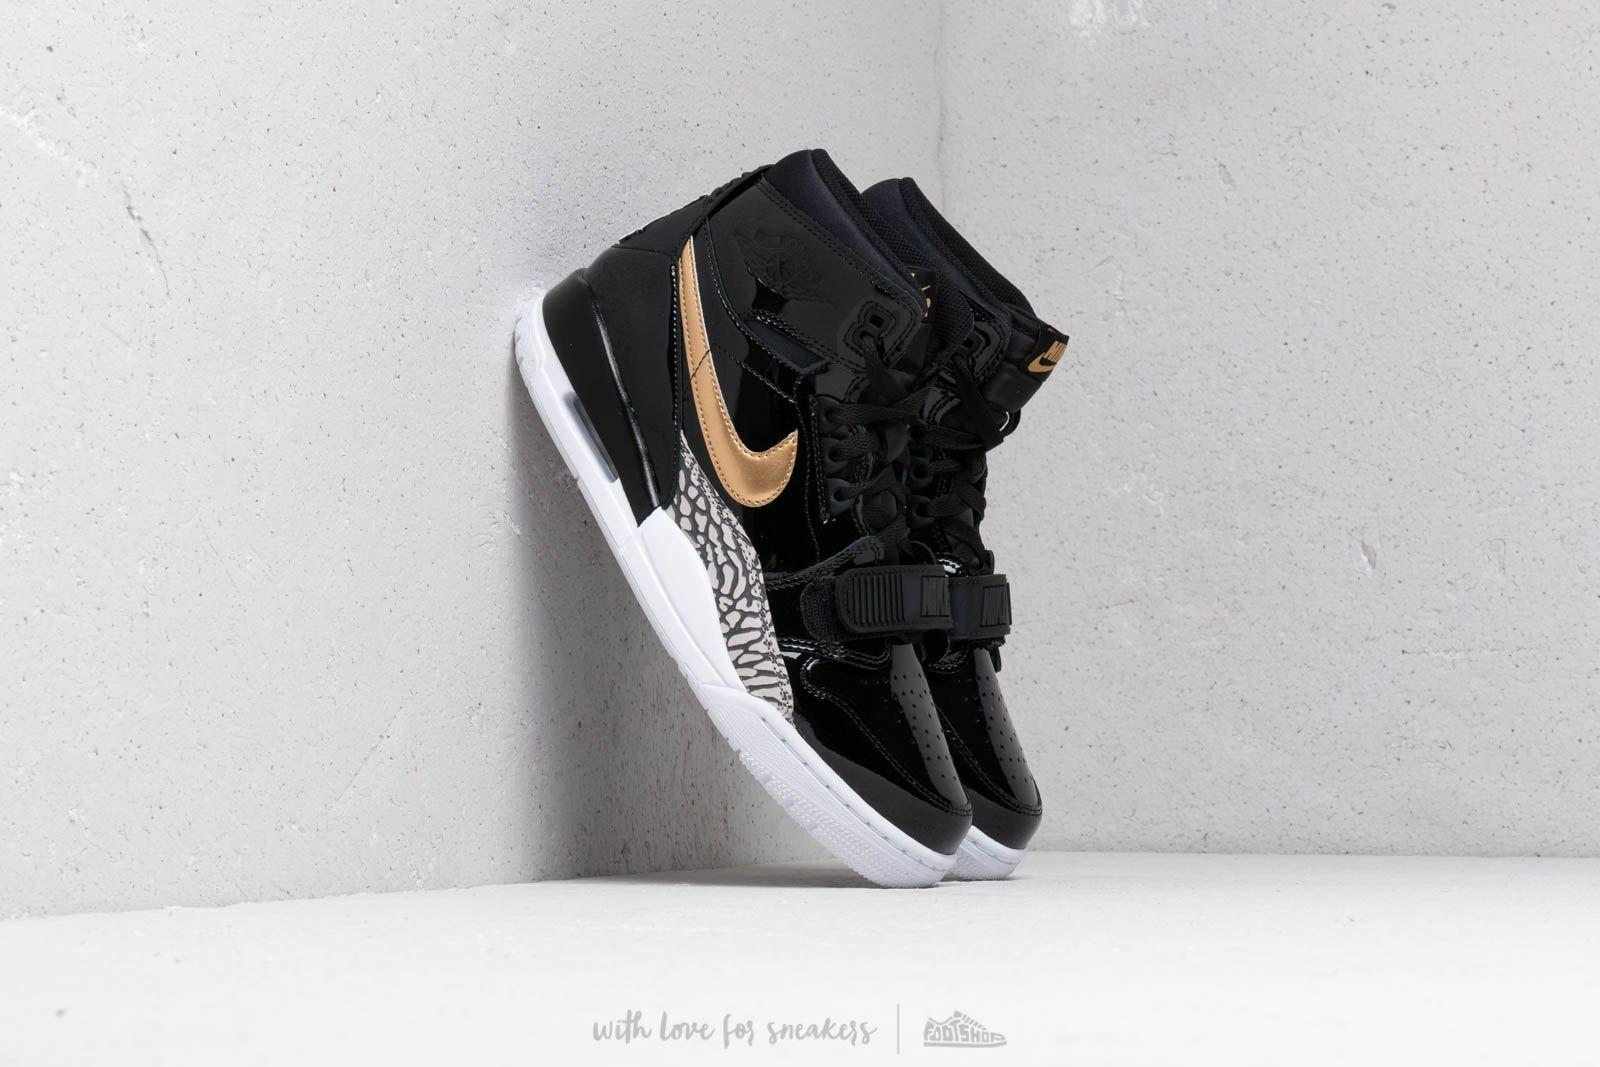 finest selection e169e 0658e Lyst - Nike Air Jordan Legacy 312 Black Metallic Gold White